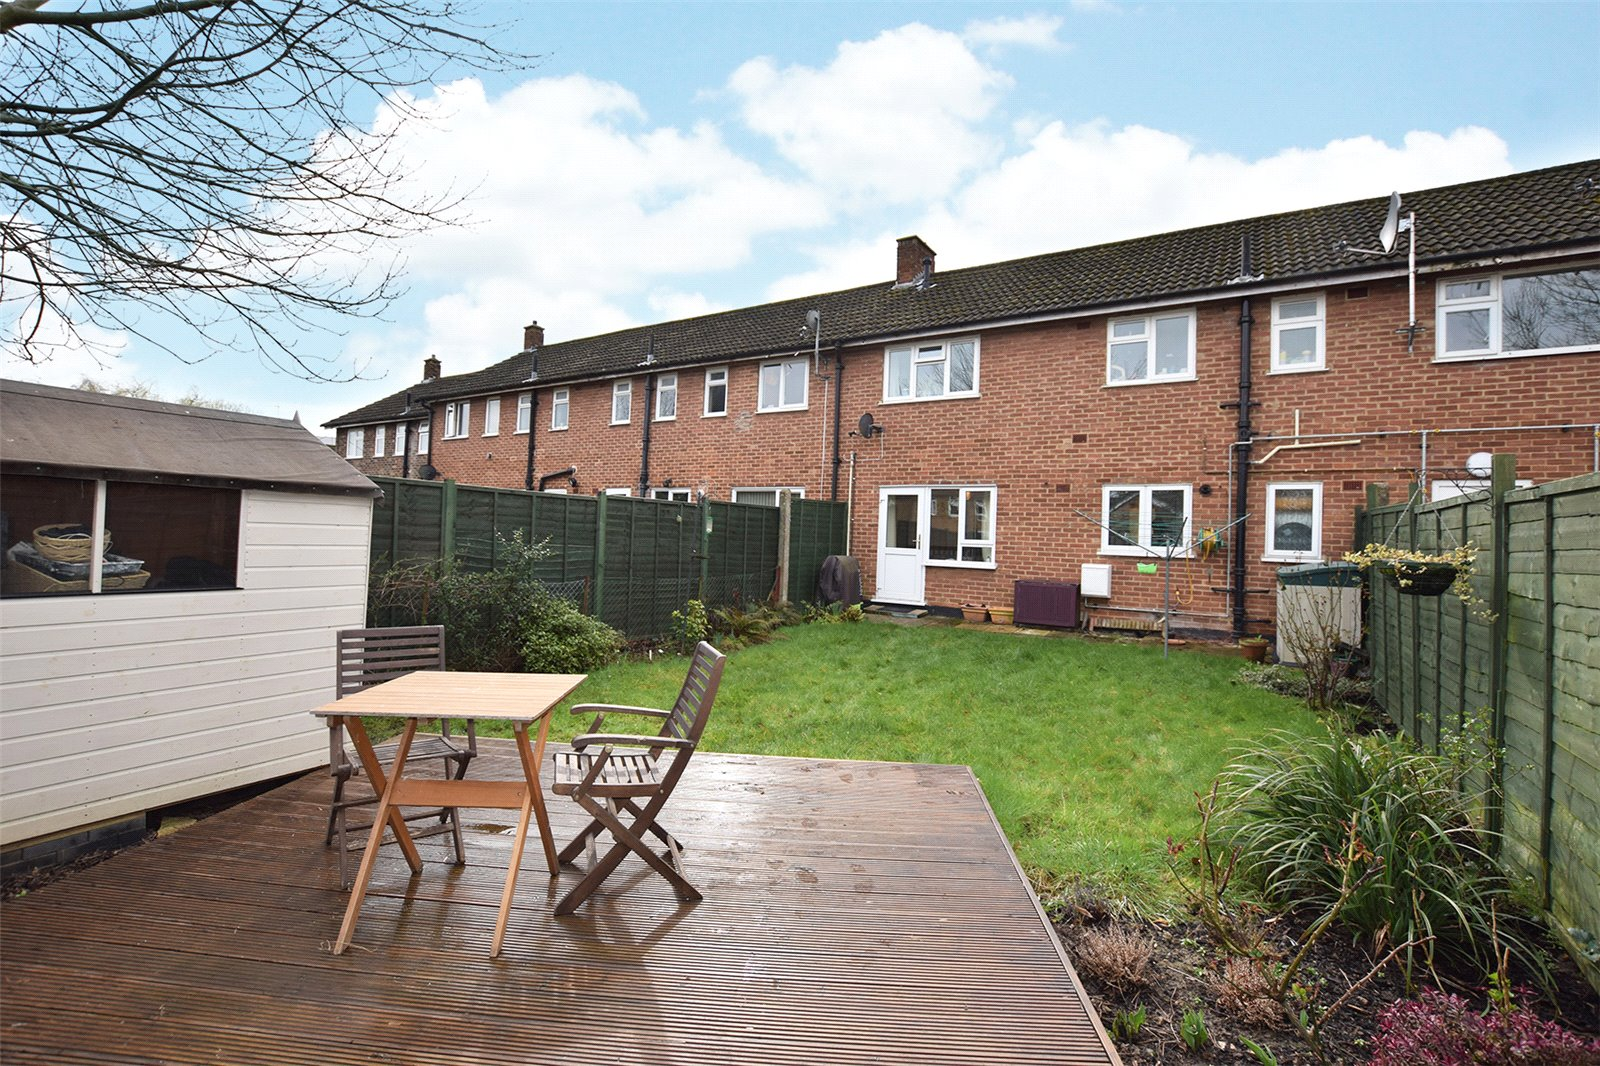 2 Bedrooms Maisonette Flat for sale in Deepfield Road, Bracknell, Berkshire, RG12